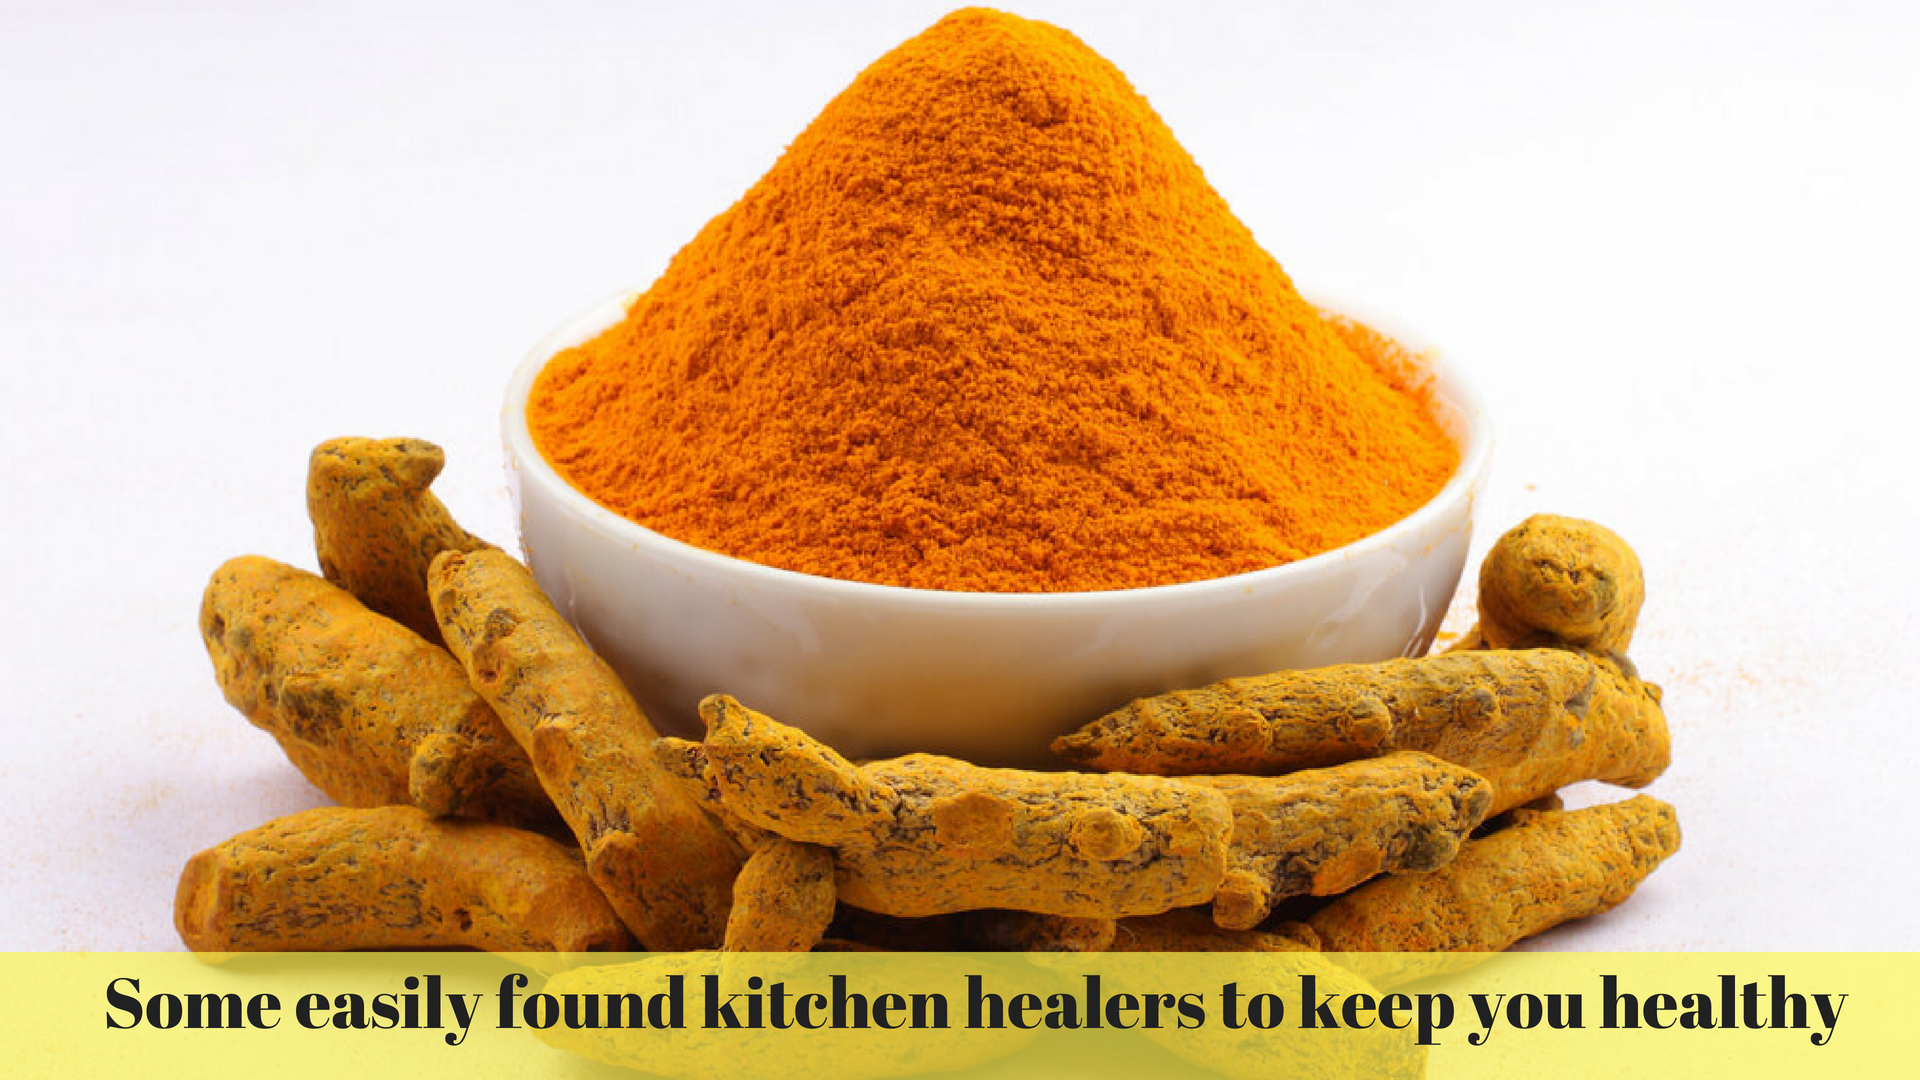 Some easily found kitchen healers to keep you healthy